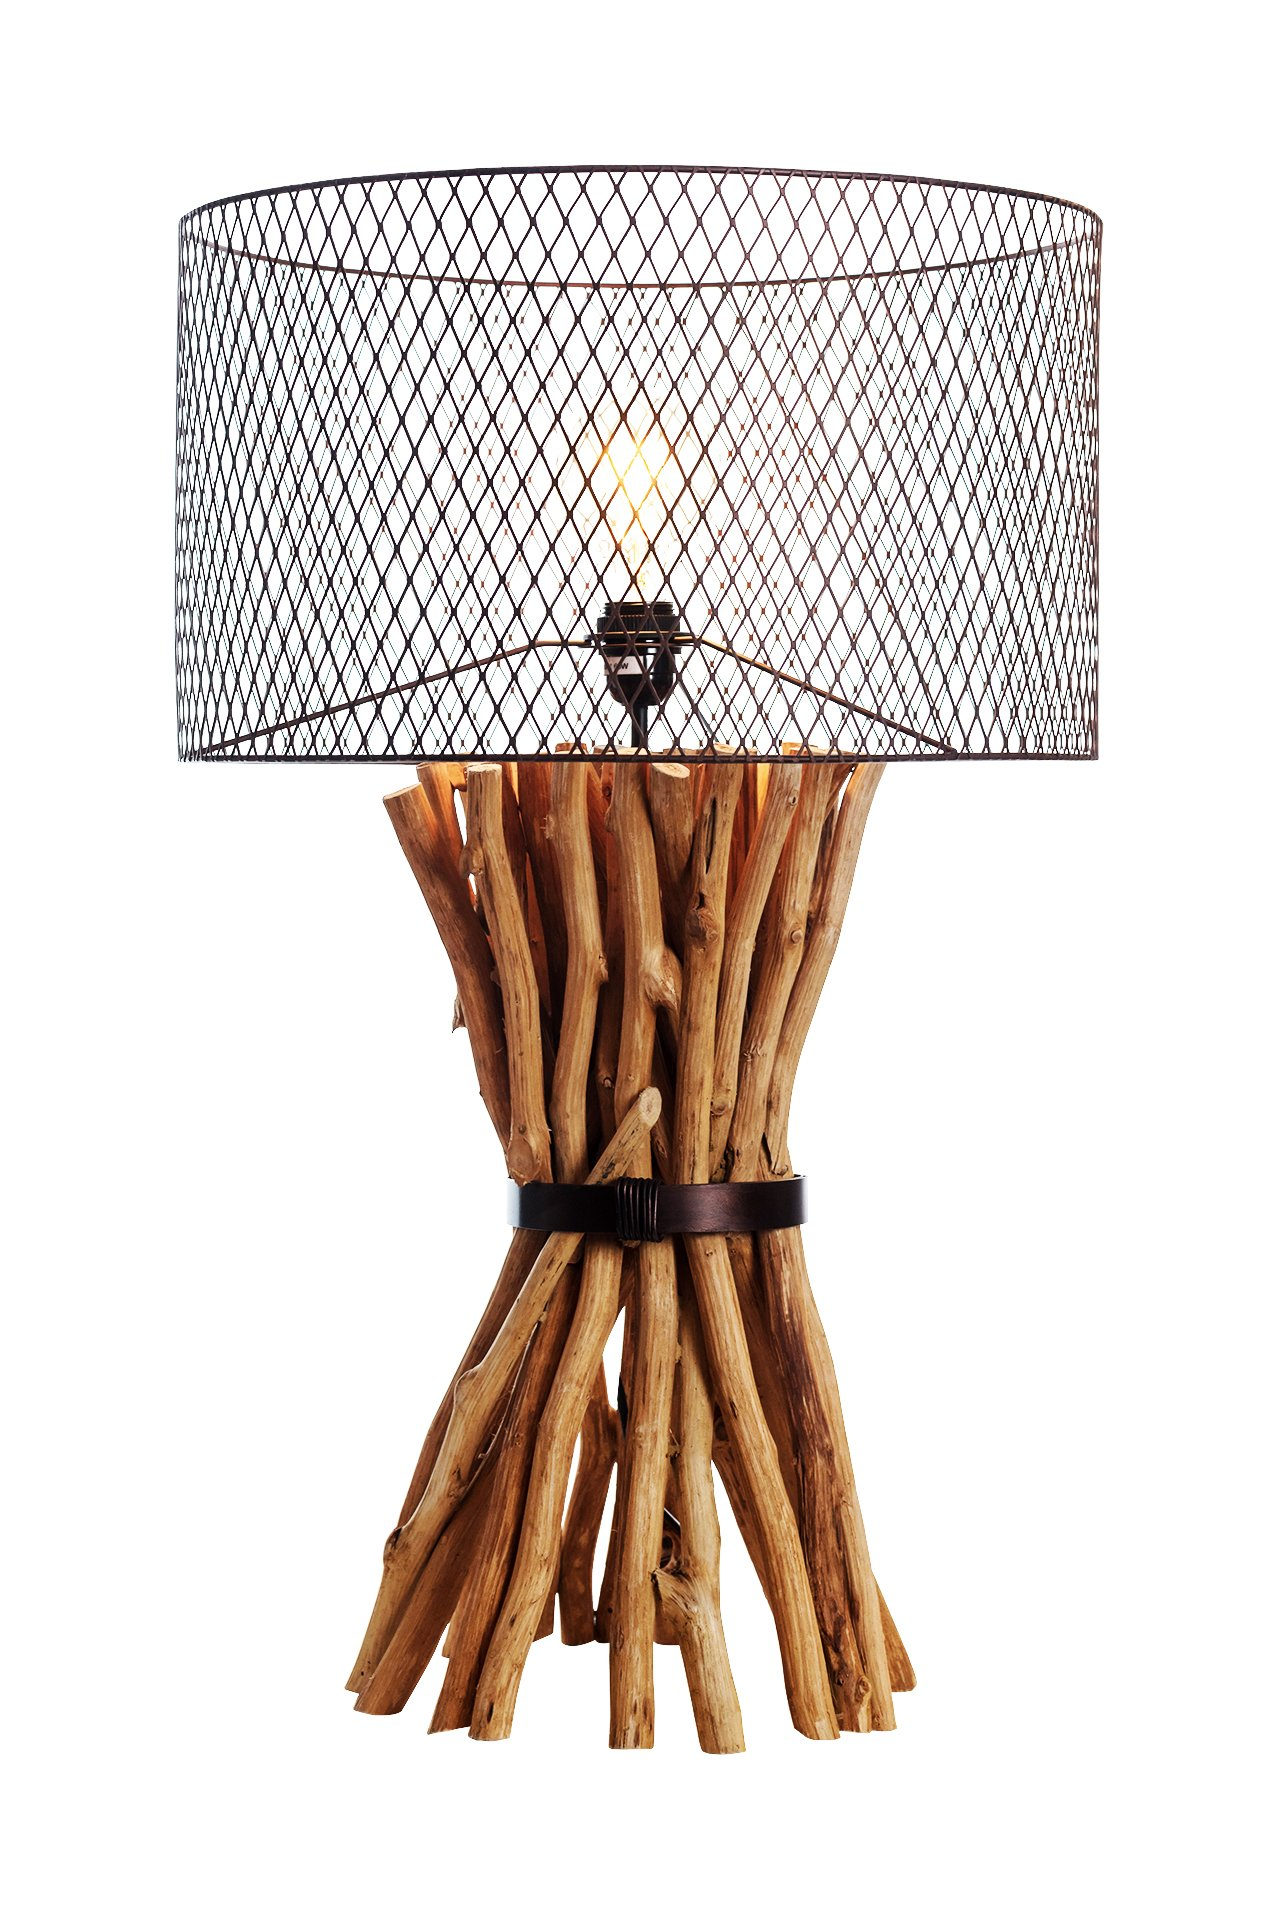 O'THENTIQUE Industrial Steampunk Table Lamp | Natural Branches Bunched Elementaire Design Rusty Metal Round Shade Handmade for Home Decor, Living Room, Bedroom, Kids Room, Office, Library